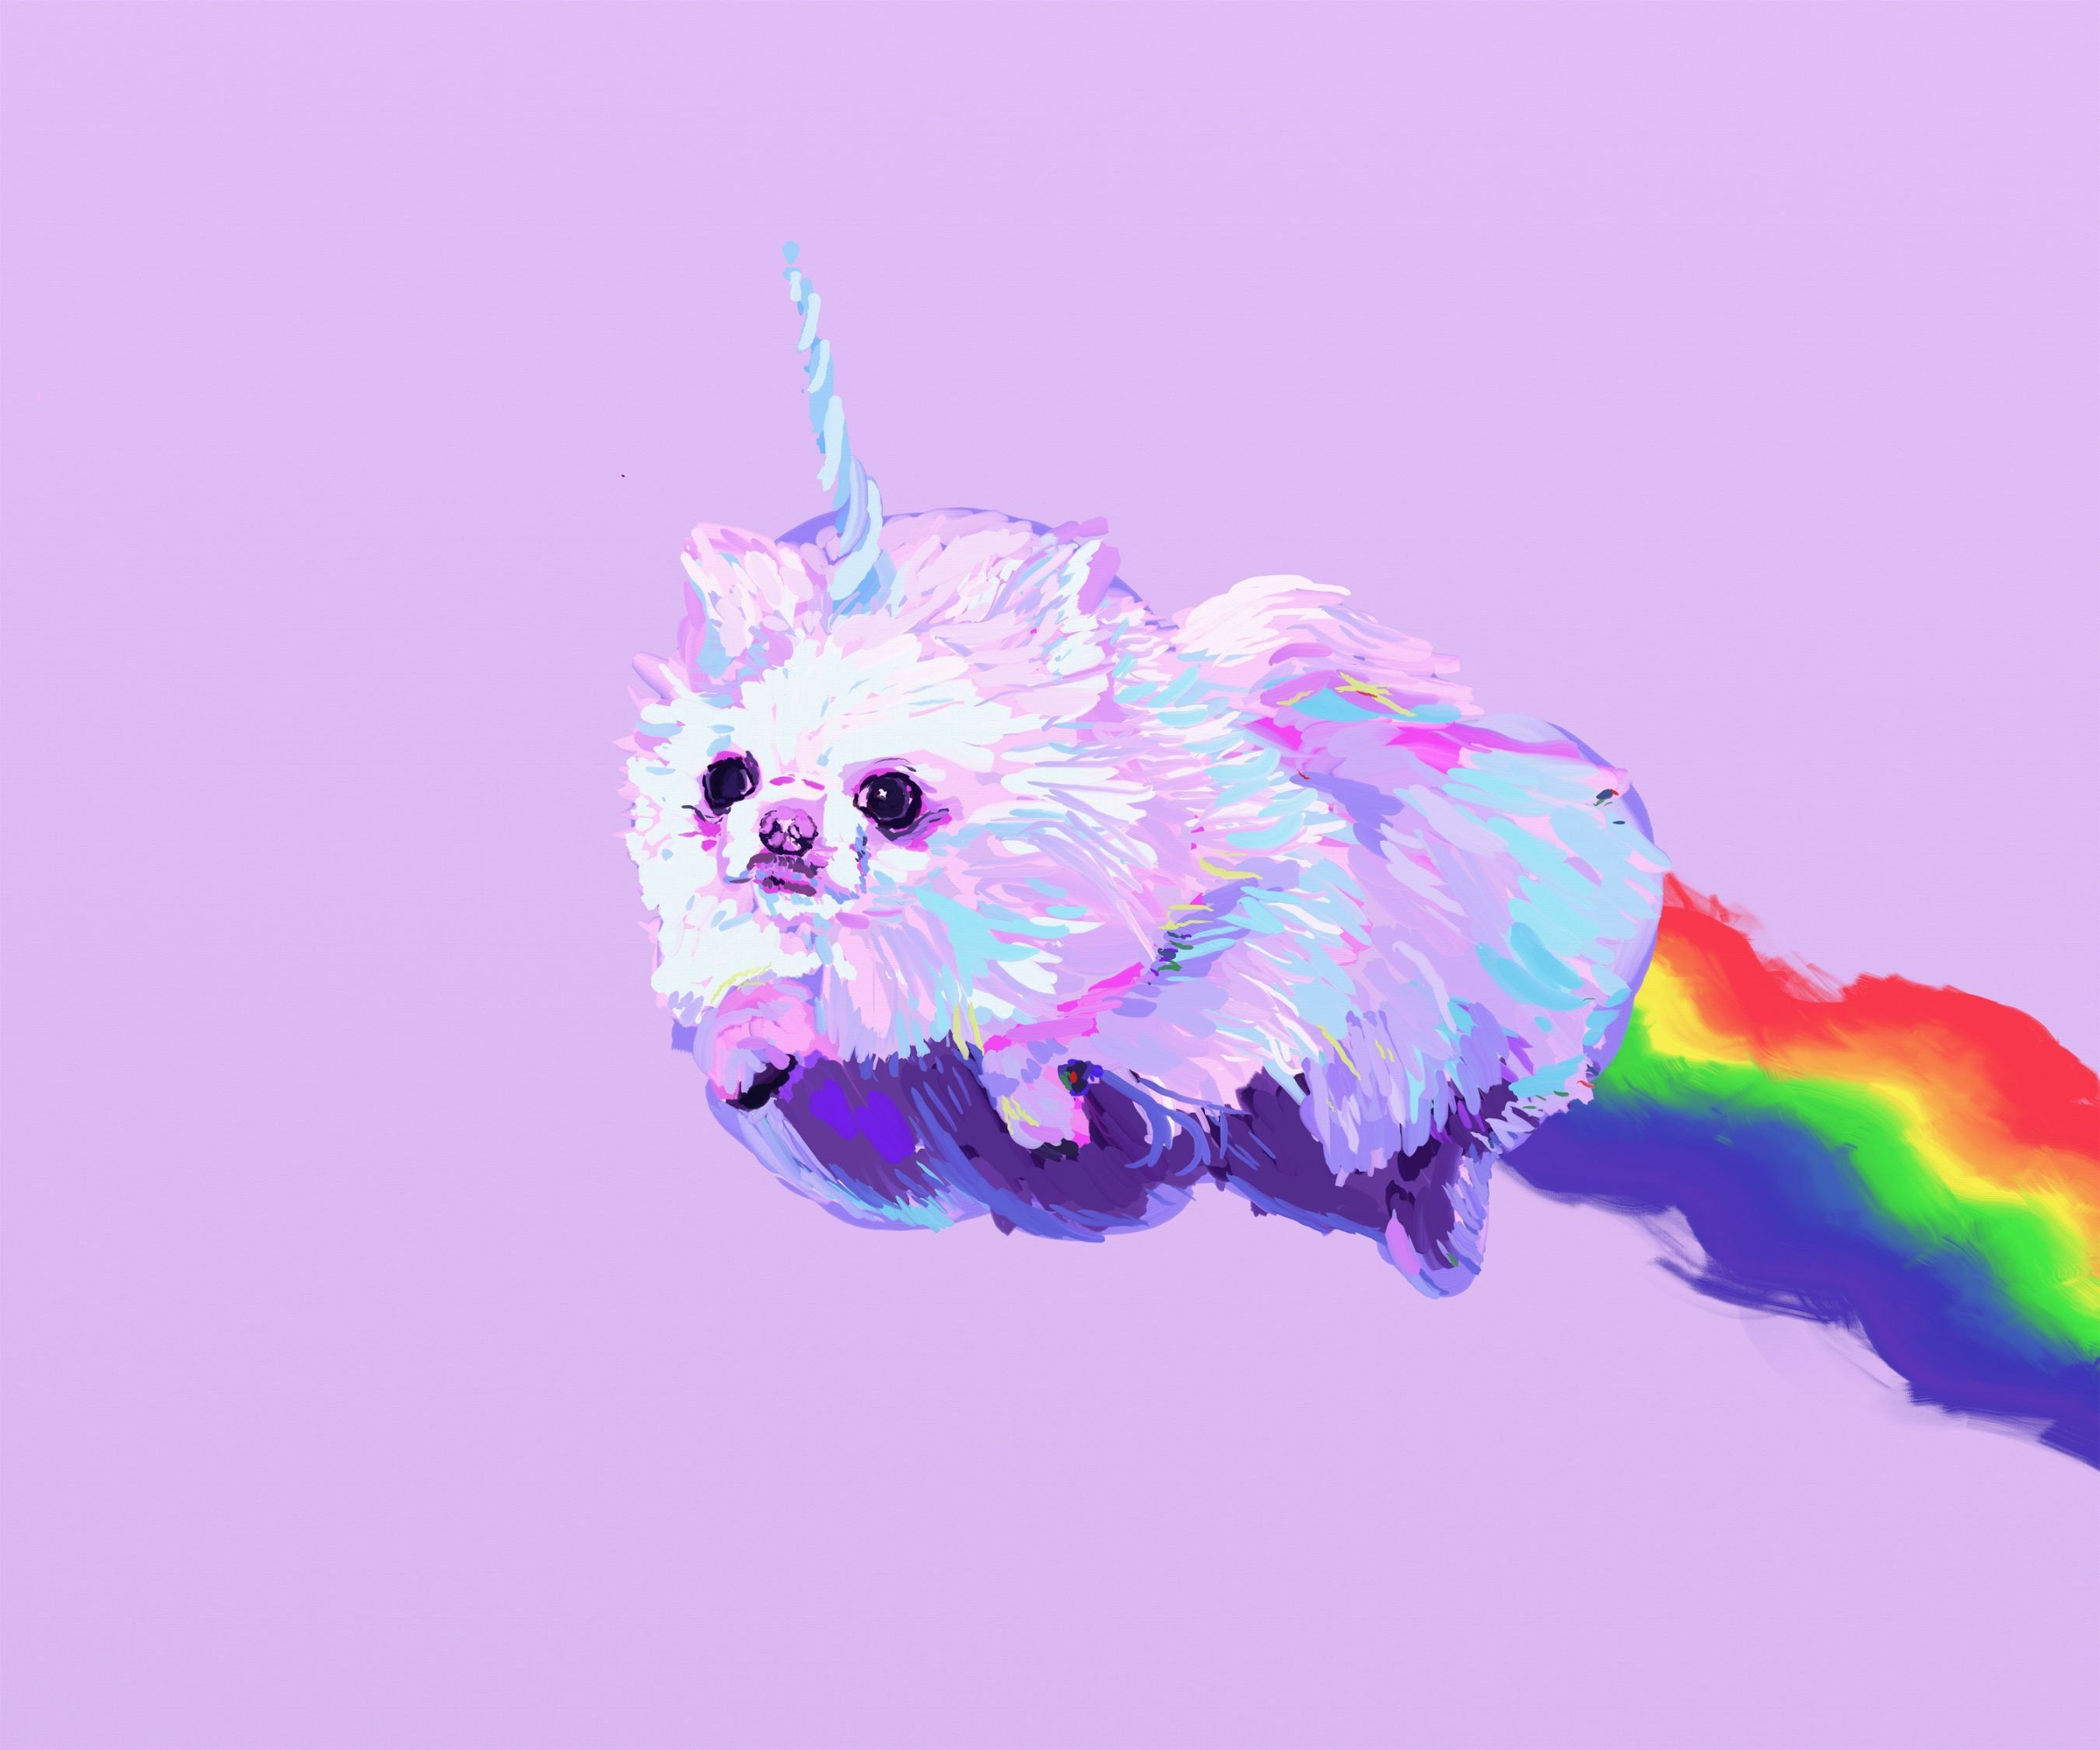 2700x2250 POMERANIAN dog dogs fantasy unicorn wallpaper | 2700x2250 | 520319 ...